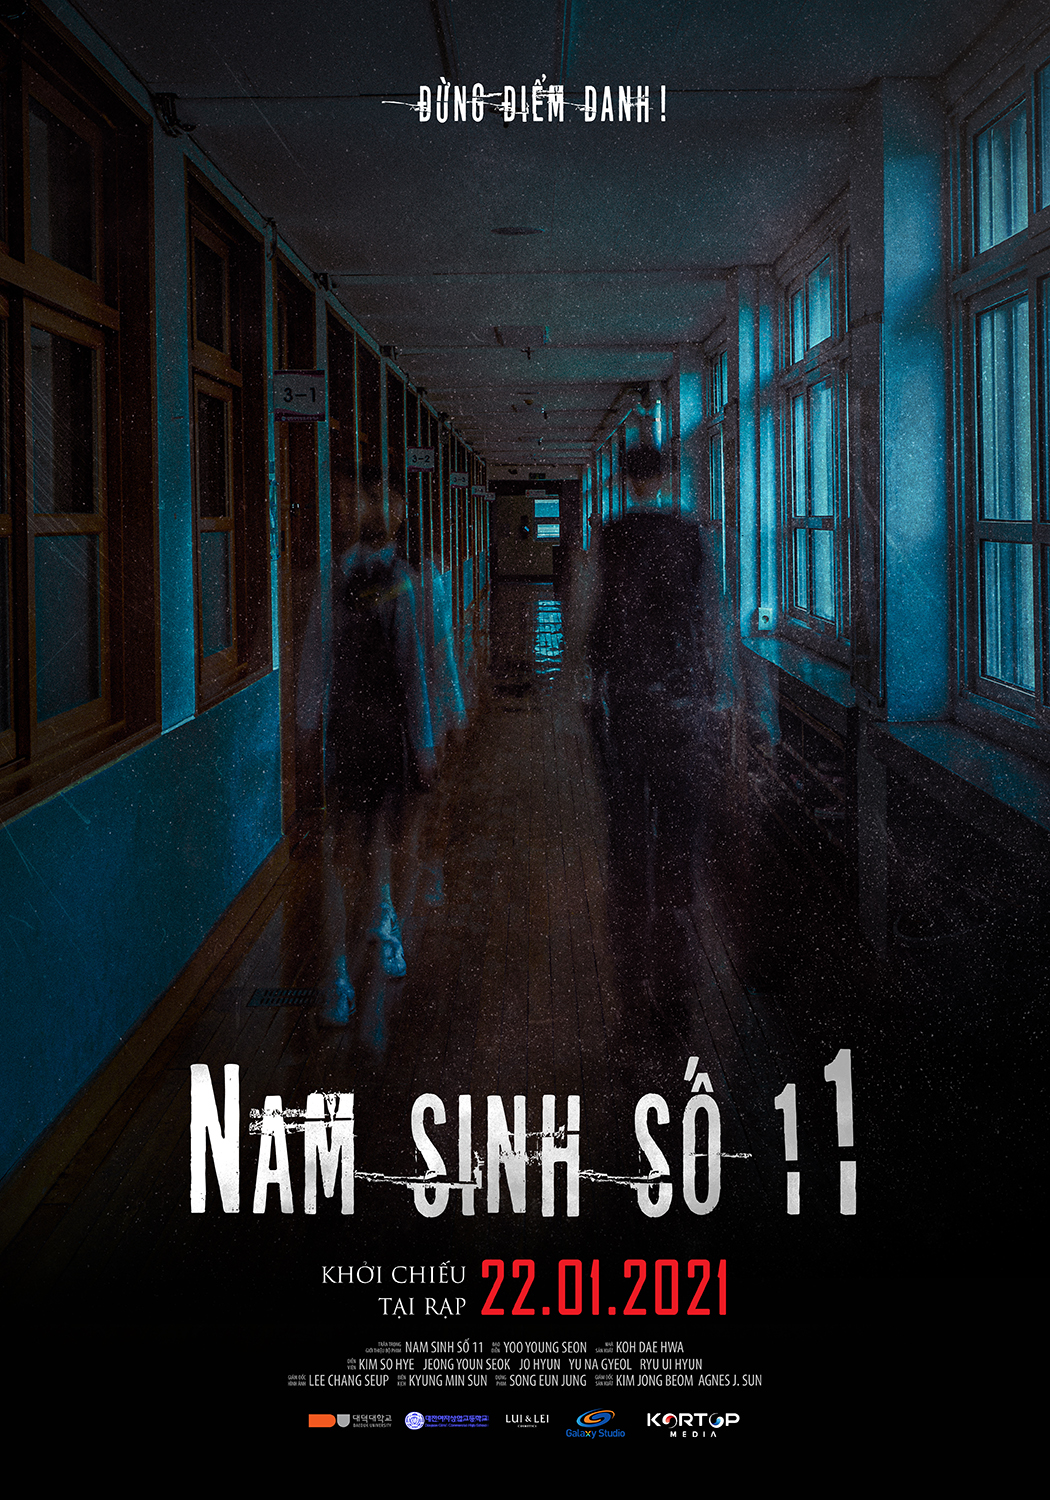 NAM SINH SỐ 11 - THE CHILD WHO WOULD NOT COME [C18]